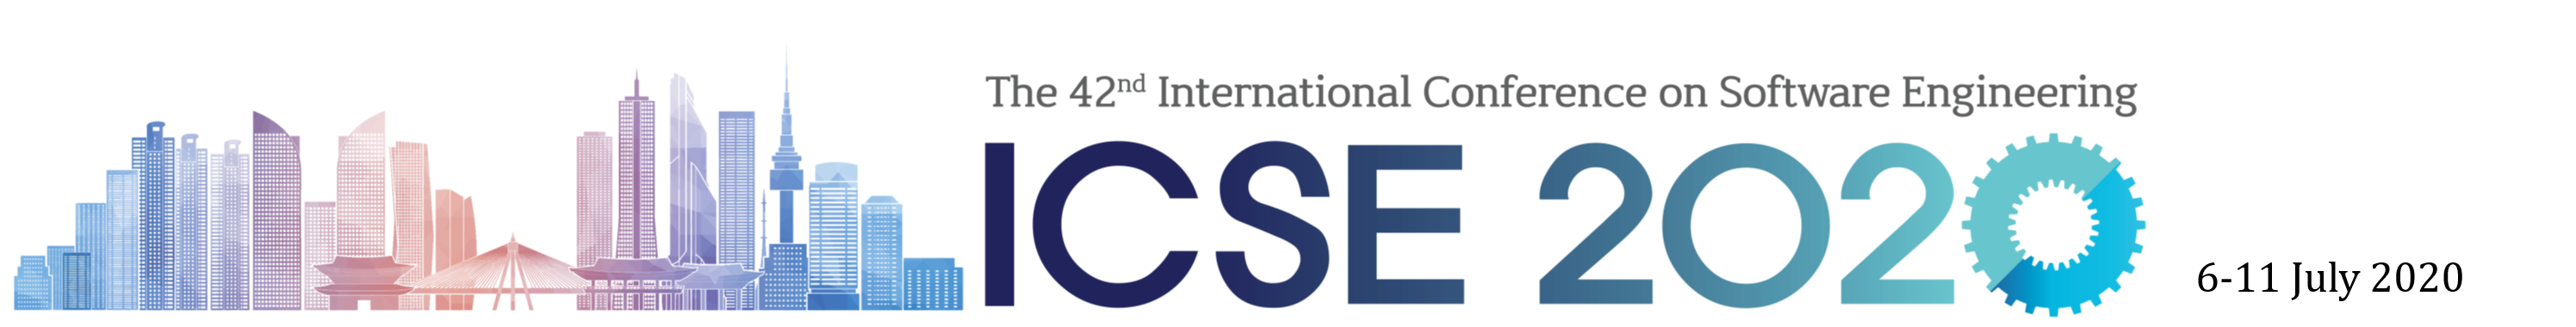 ICSE 2020 (42nd International Conference on Software Engineering)